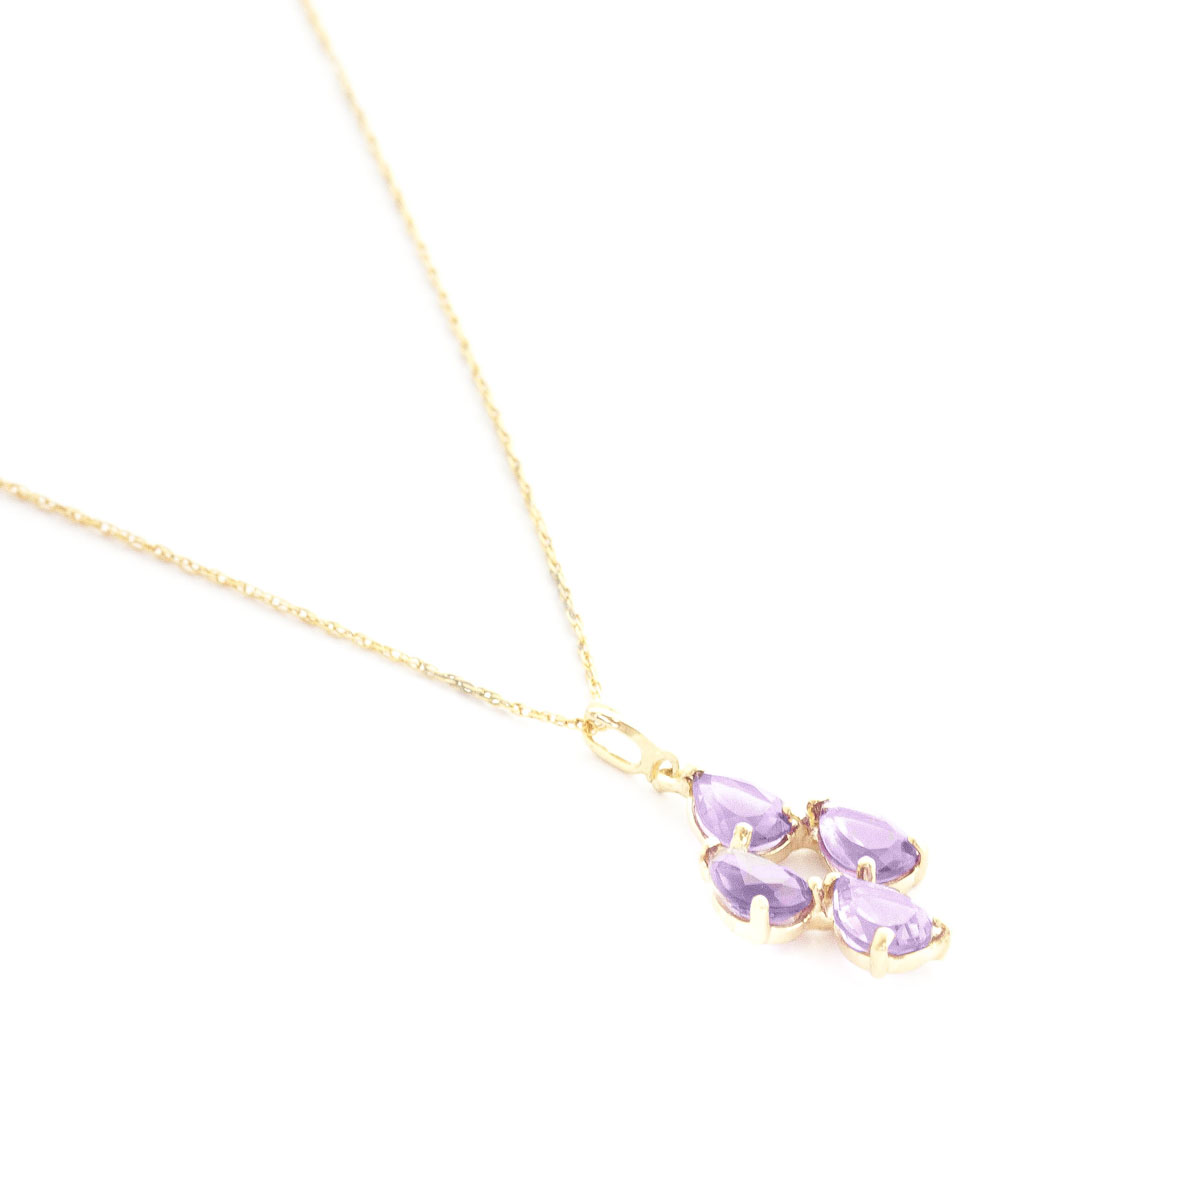 Amethyst Chandelier Pendant Necklace 1.5 ctw in 9ct Gold